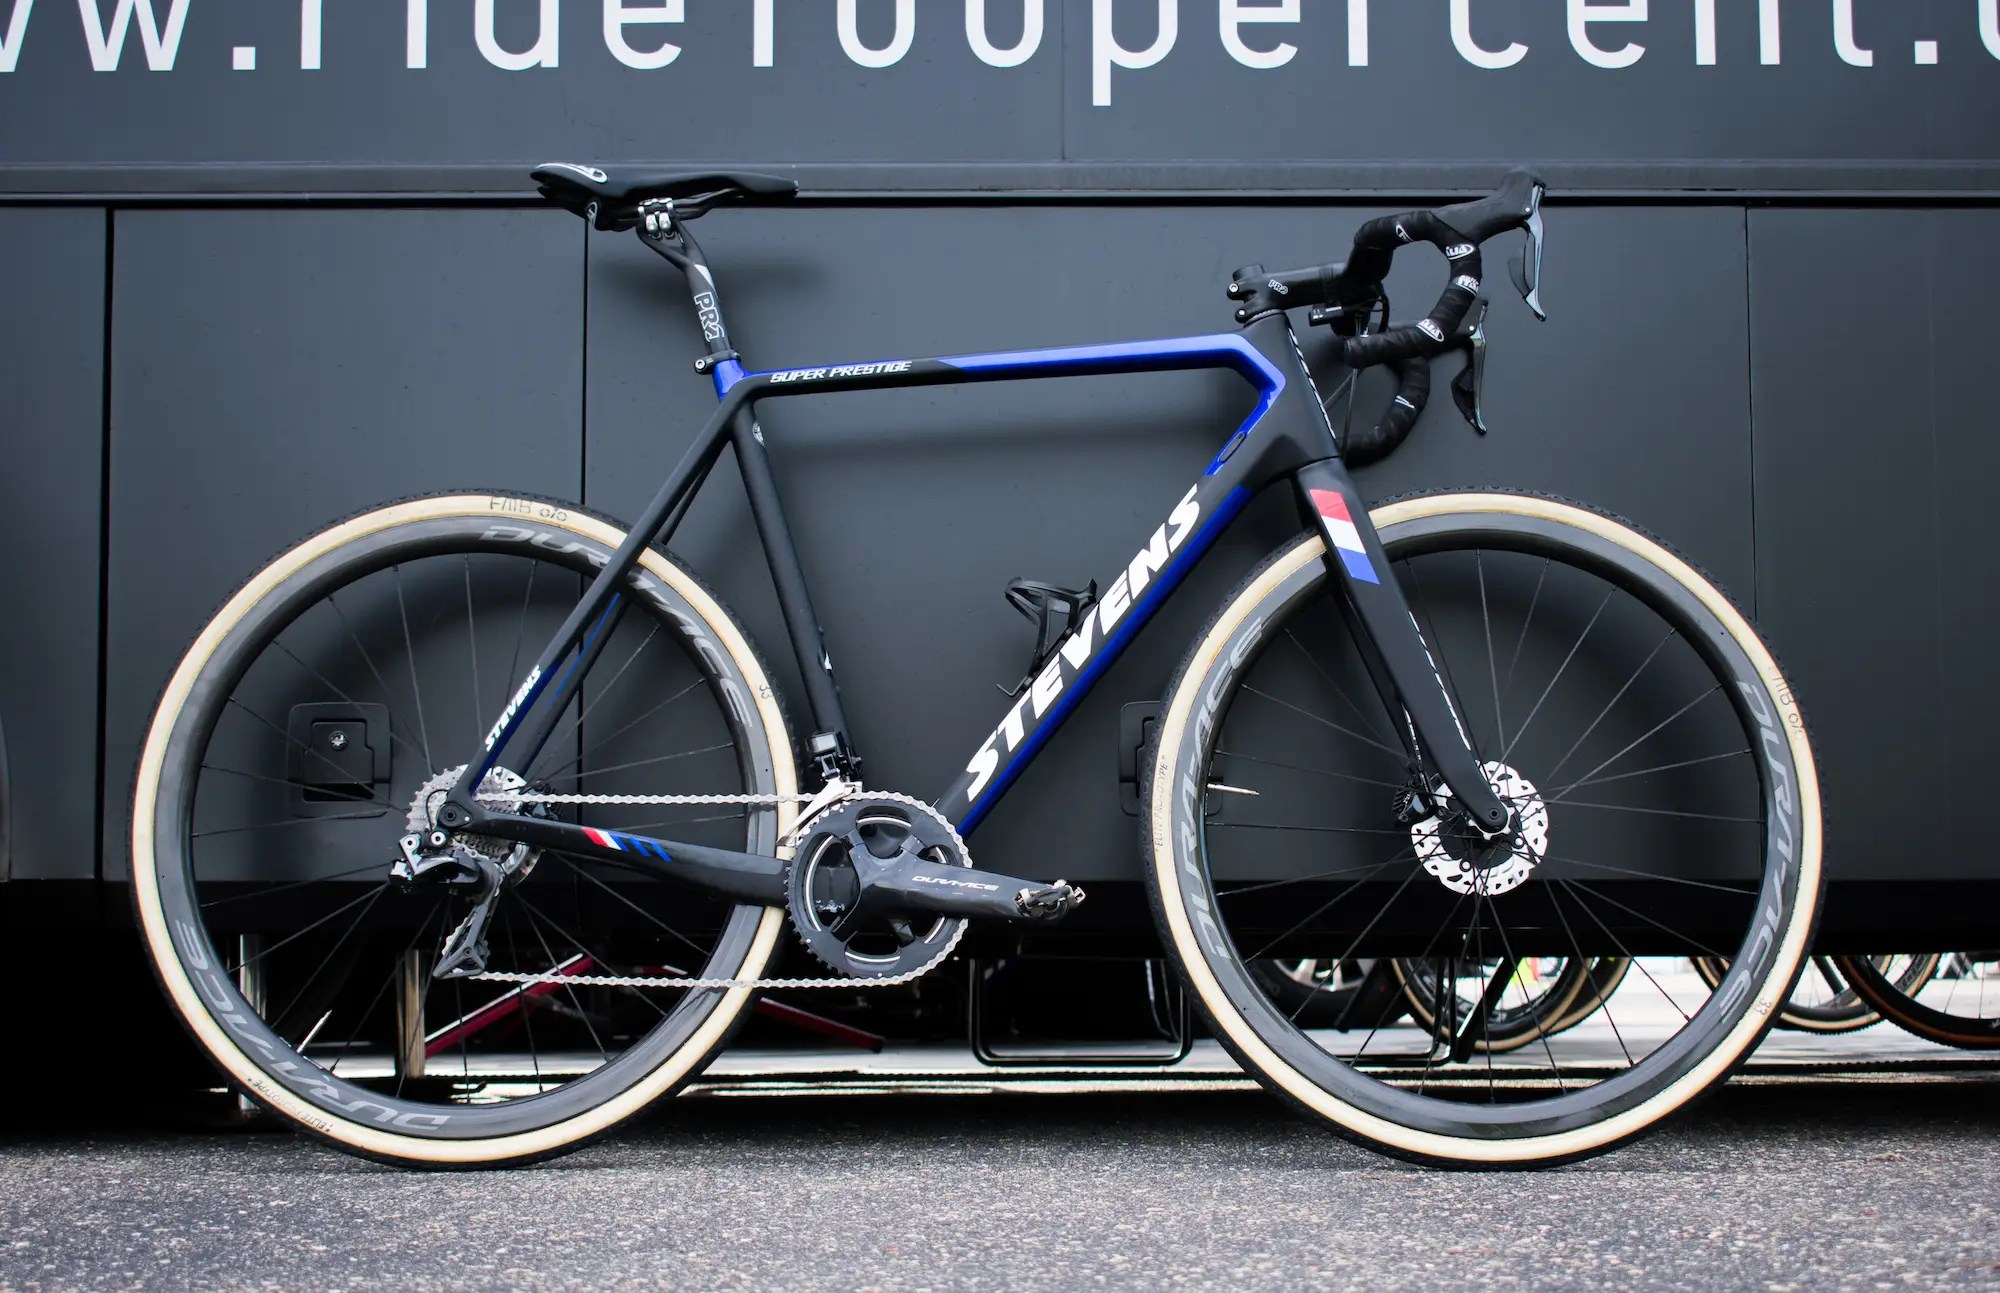 stevens super prestige cyclocross bike